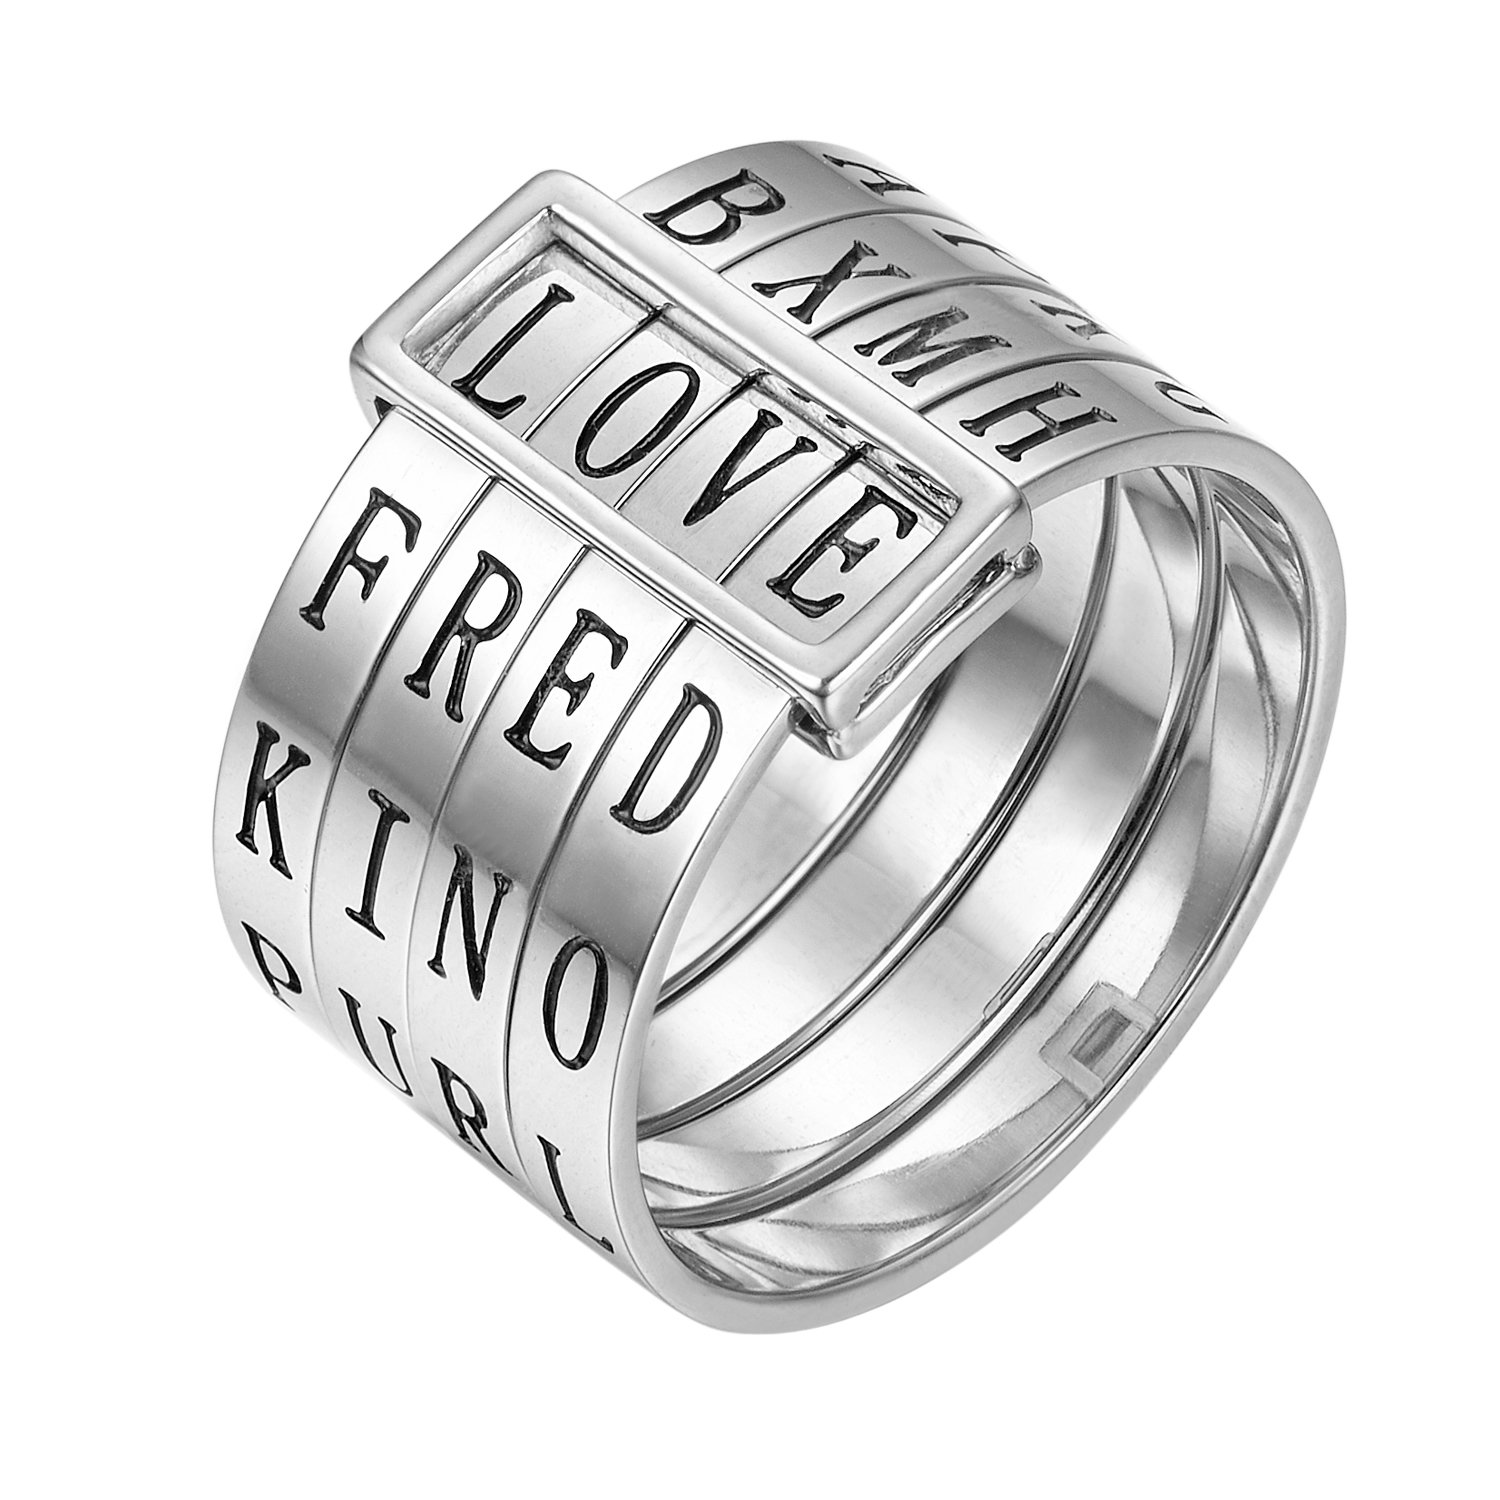 Shally Unisex Real Silver Natural Handmade Fashion Jewelry Rotatable Ring Can Make Different Words Rings for Women Bijoux US6